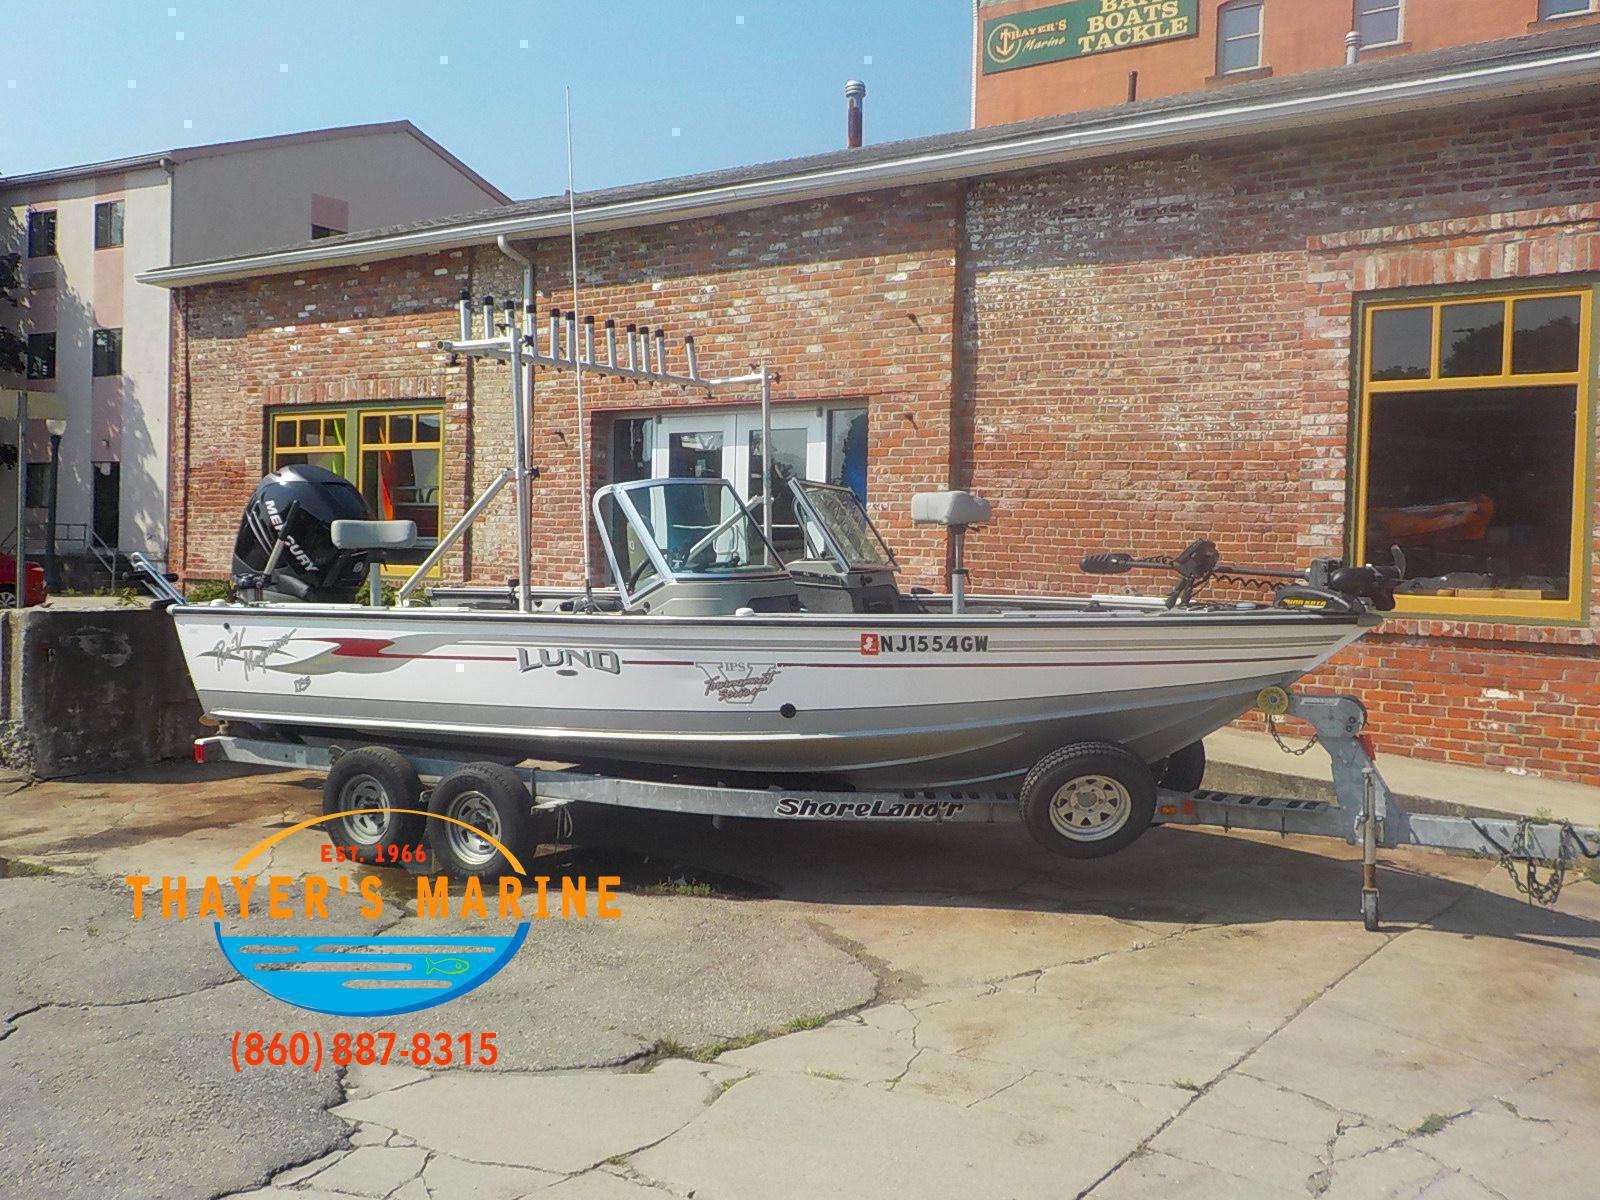 Boats from Lund Thayer's Marine Inc  Norwich, CT (860) 887-8315